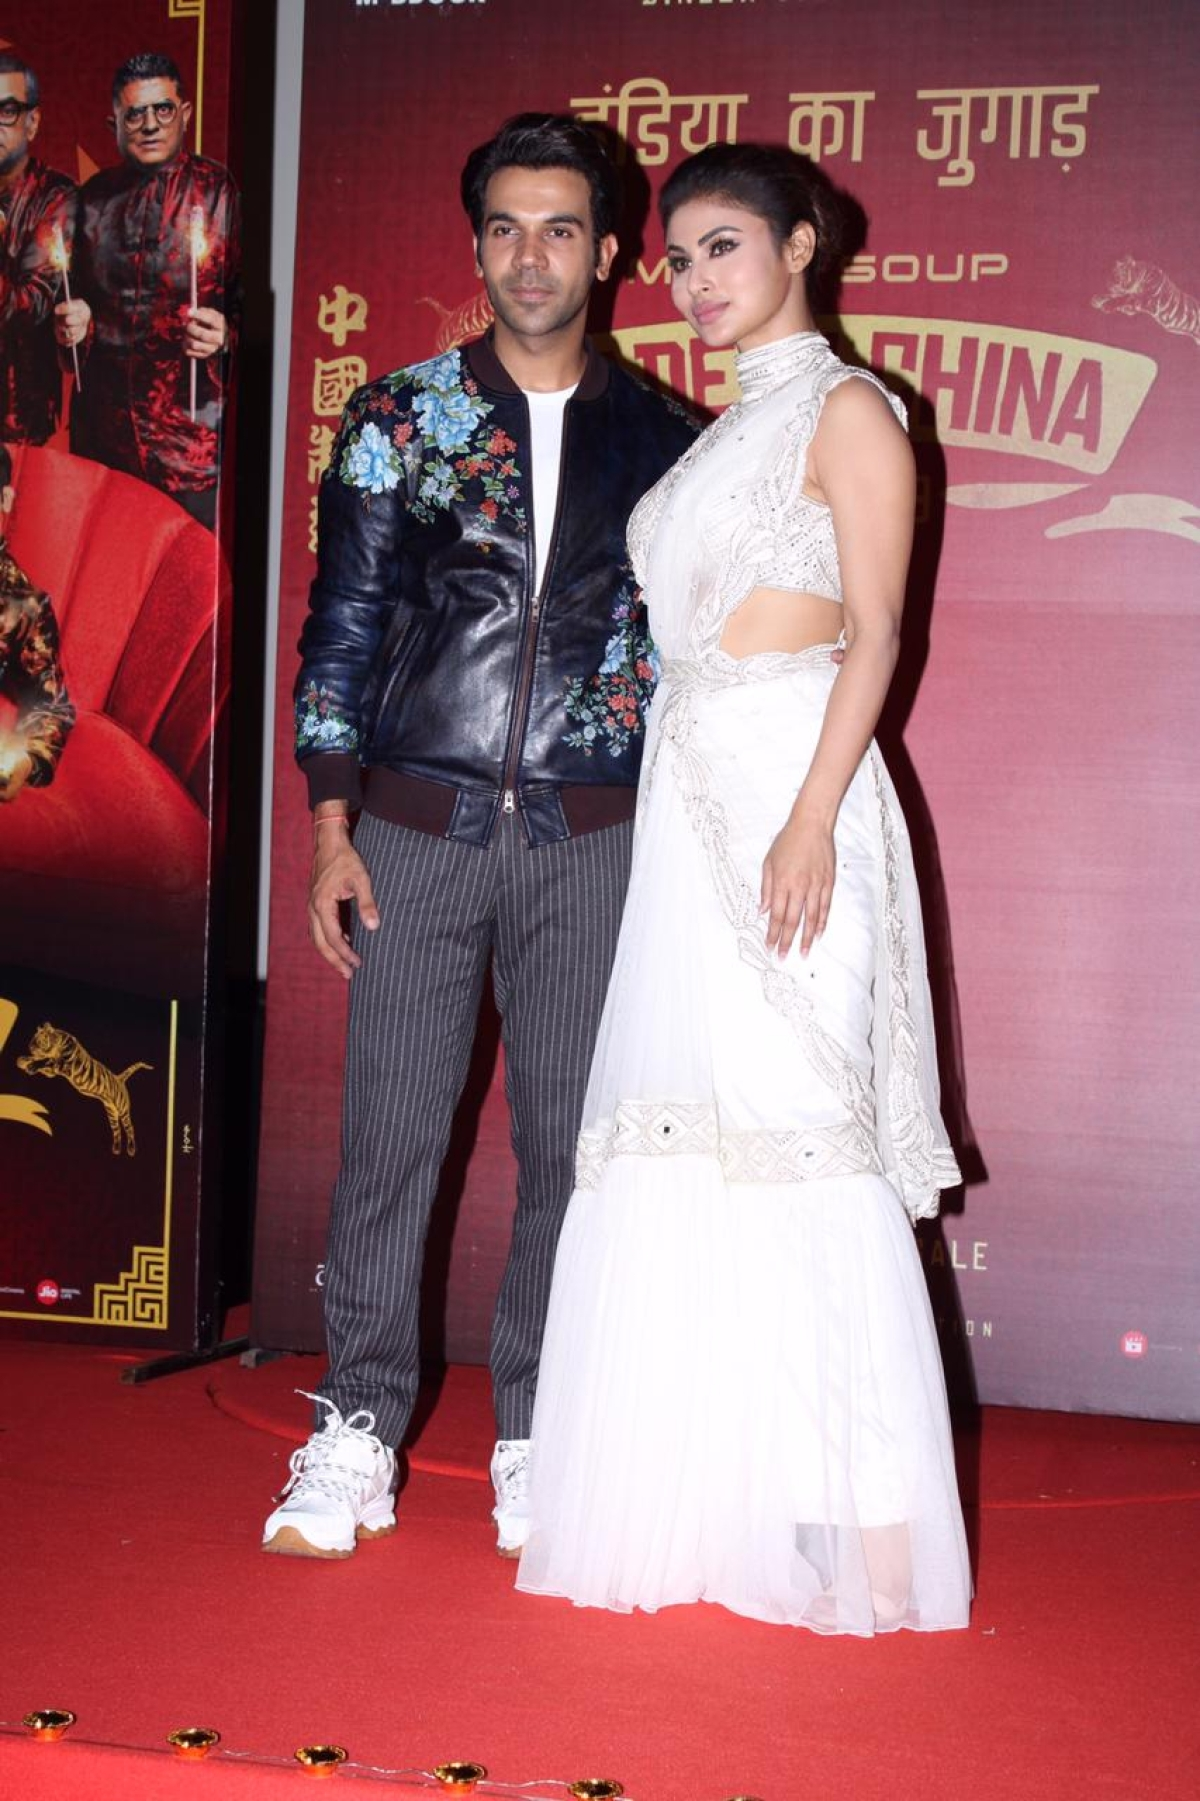 Rajkummar rao Mouni Roy at trailer launch of 'Made in China'